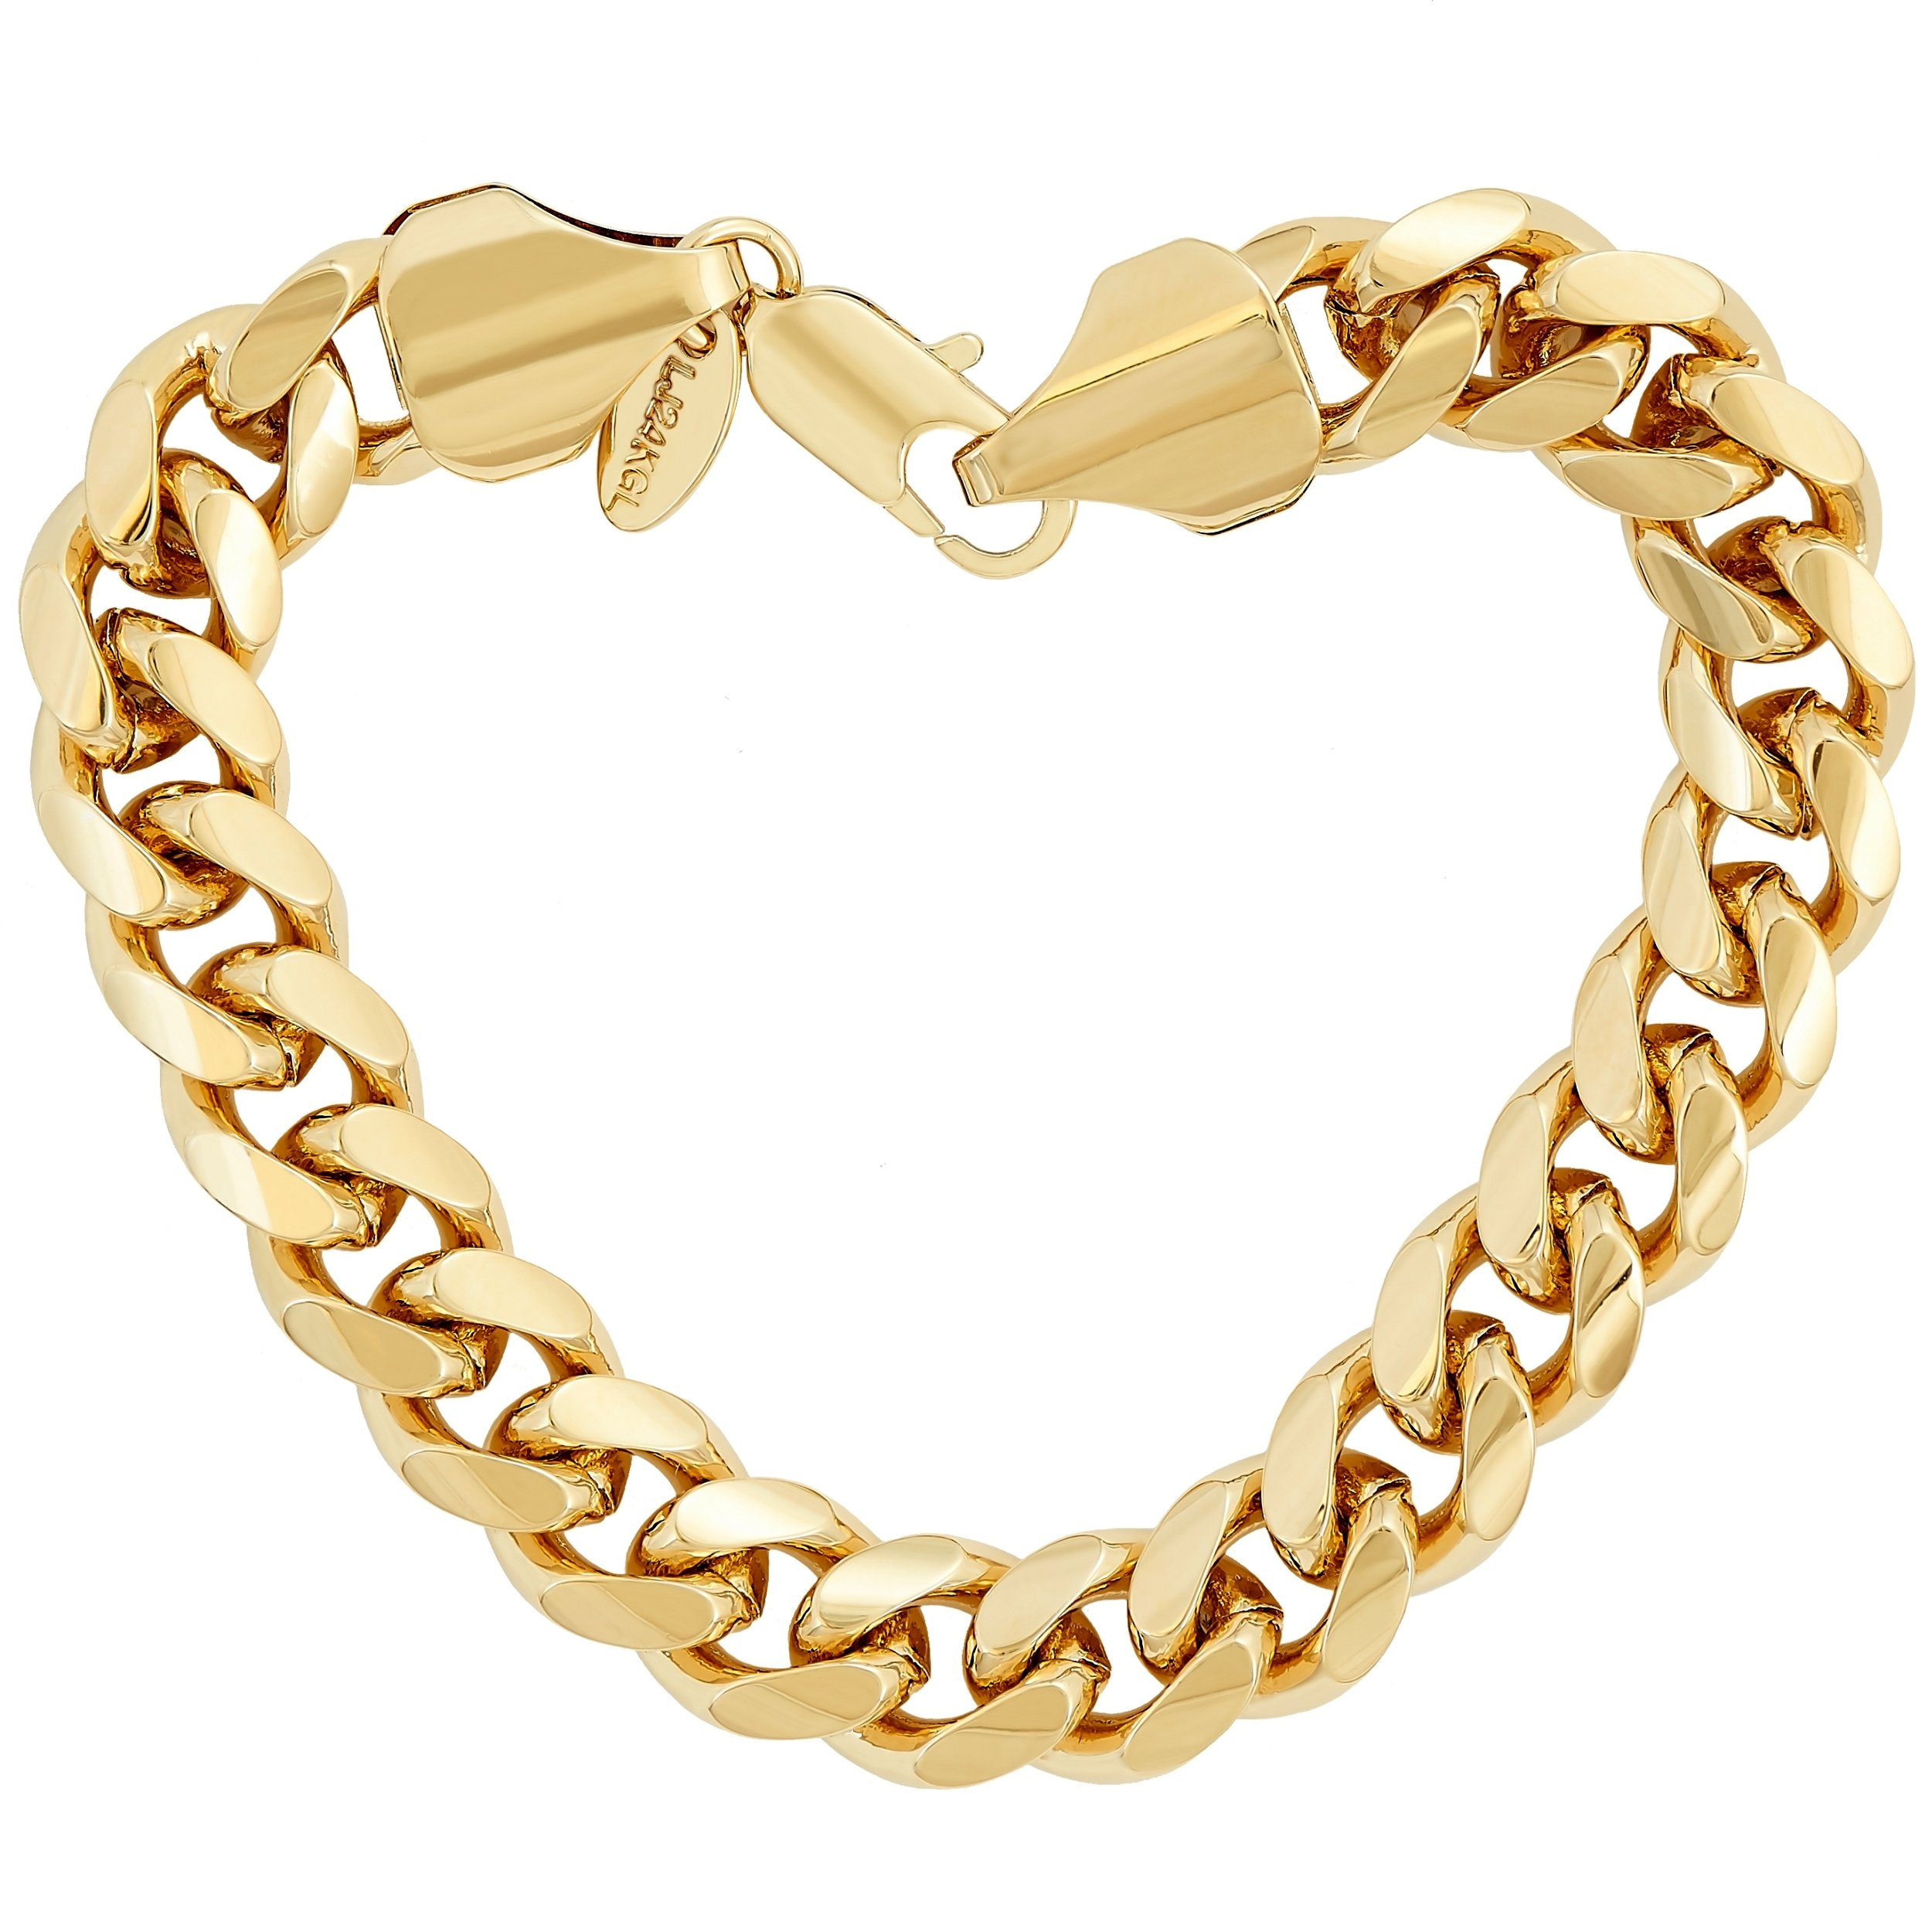 Lifetime Jewelry Cuban Link Bracelet 11MM, Round, 24K Gold Overlay Premium Fashion Jewelry, Guaranteed for Life, 8 Inches by Lifetime Jewelry